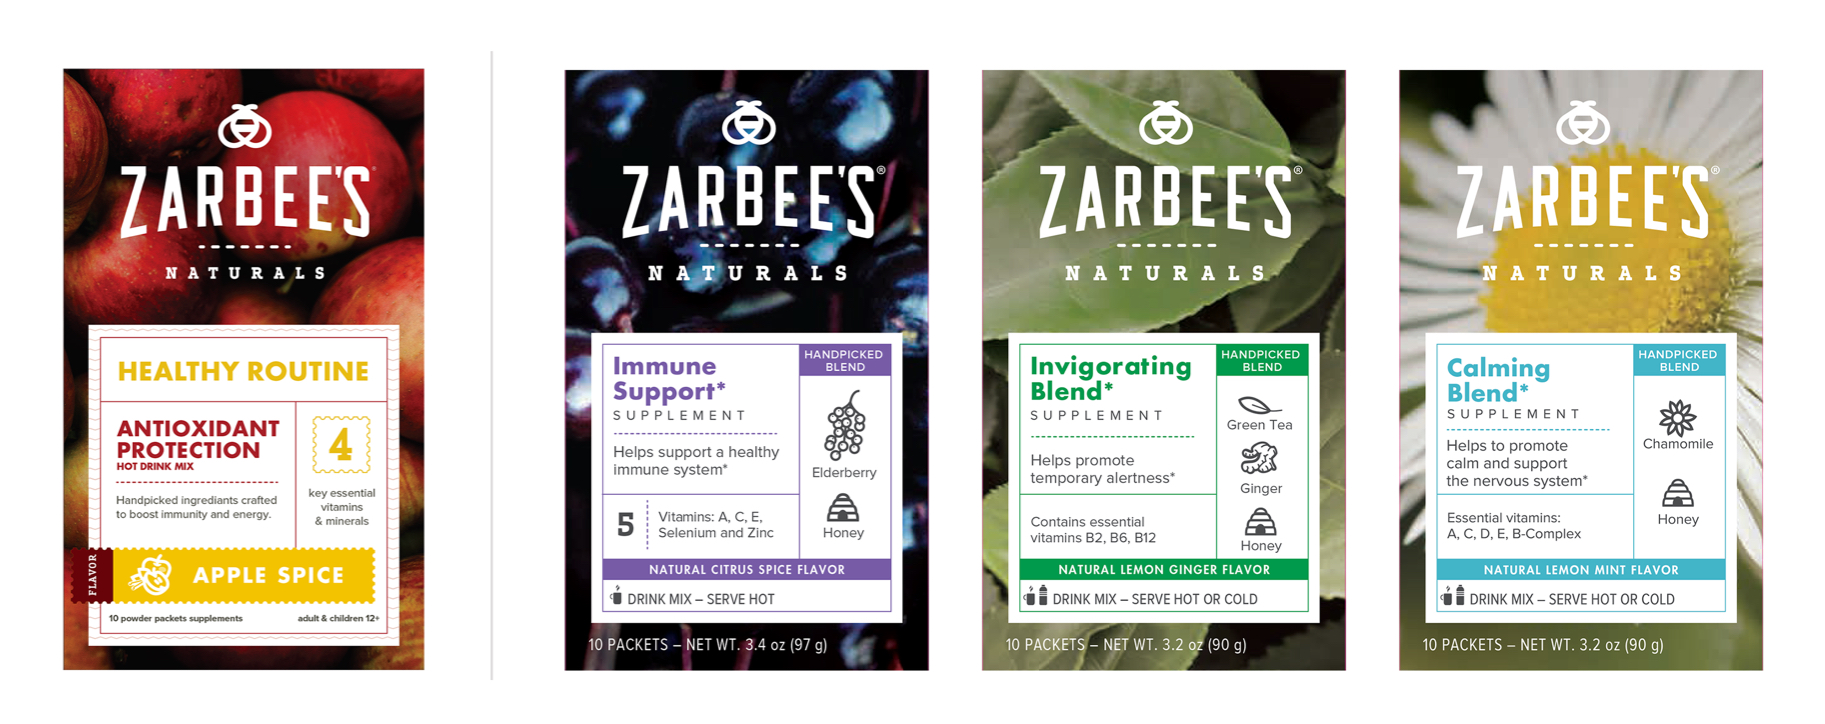 Zarbee's Final Packaging against concept